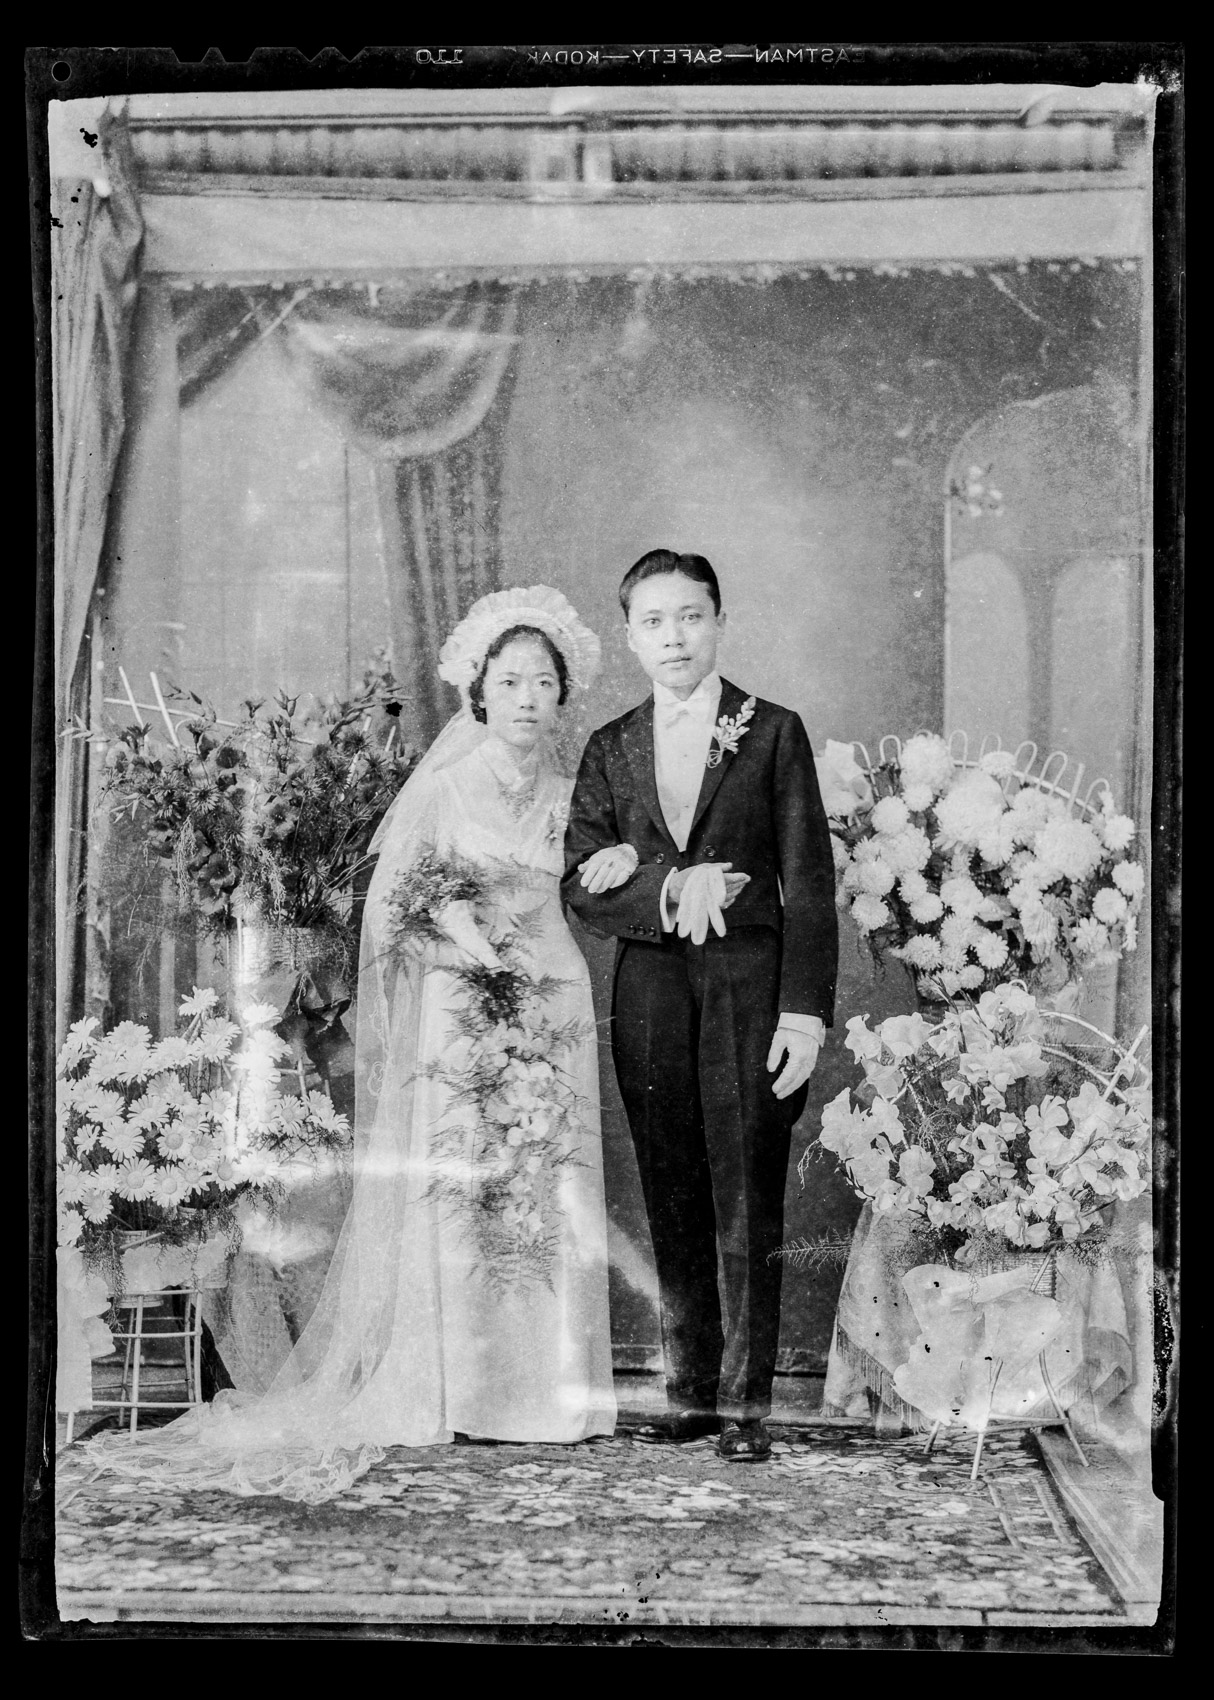 The Wedding of Lie Soei Pin (Elwin Lisardi) and Tjan Ang Kie (Yanti Chandra) • Fort De Kock, Dutch East Indies, 1939